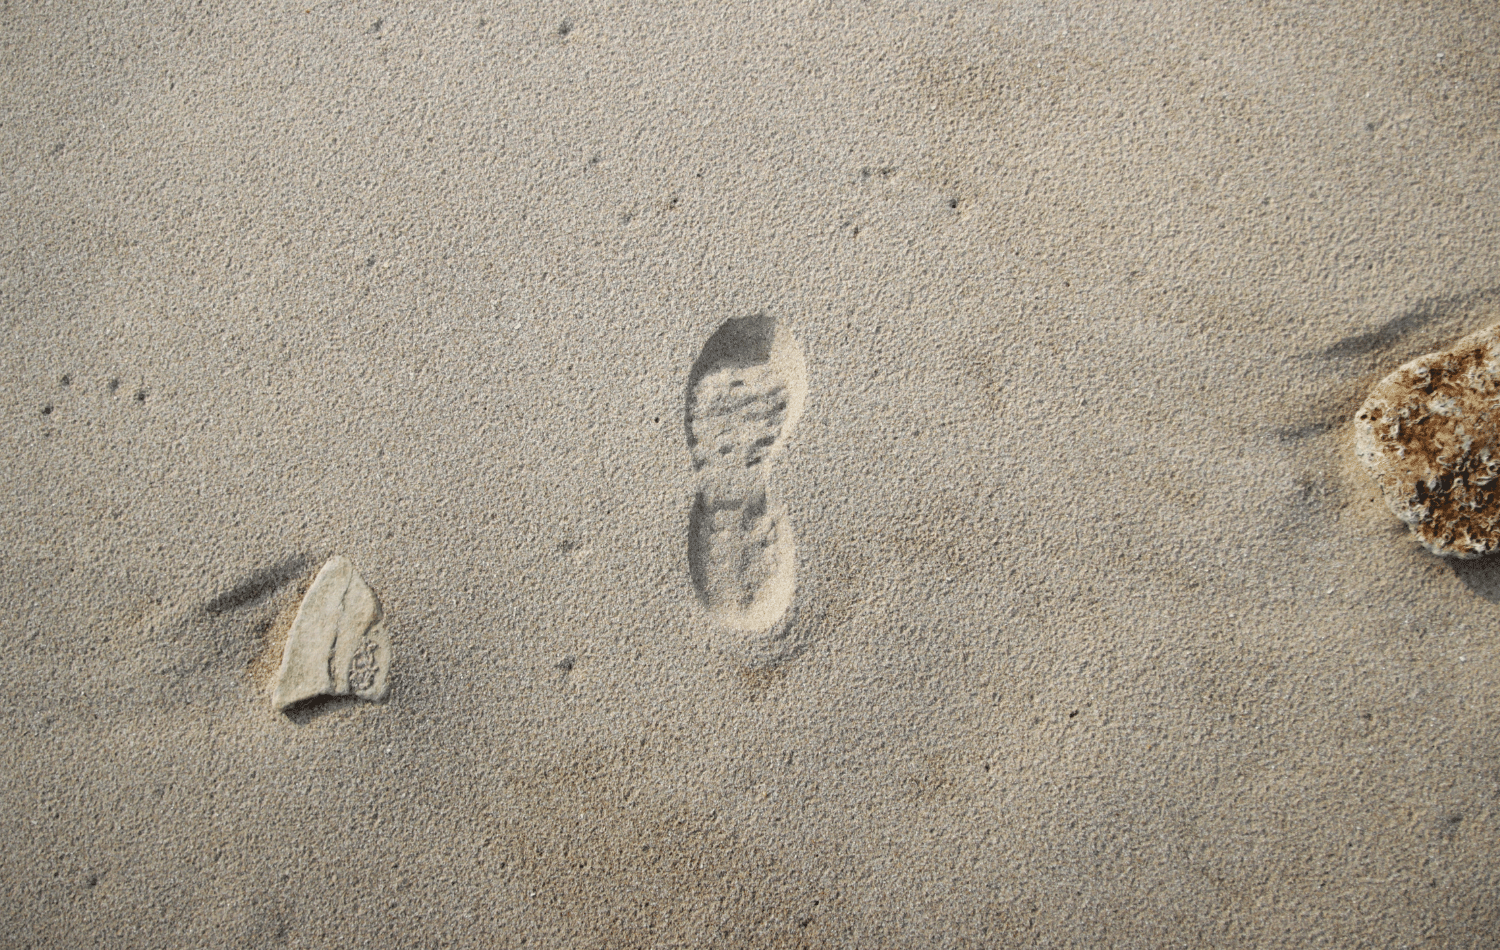 Footprint in the sand - How to create a Brand story